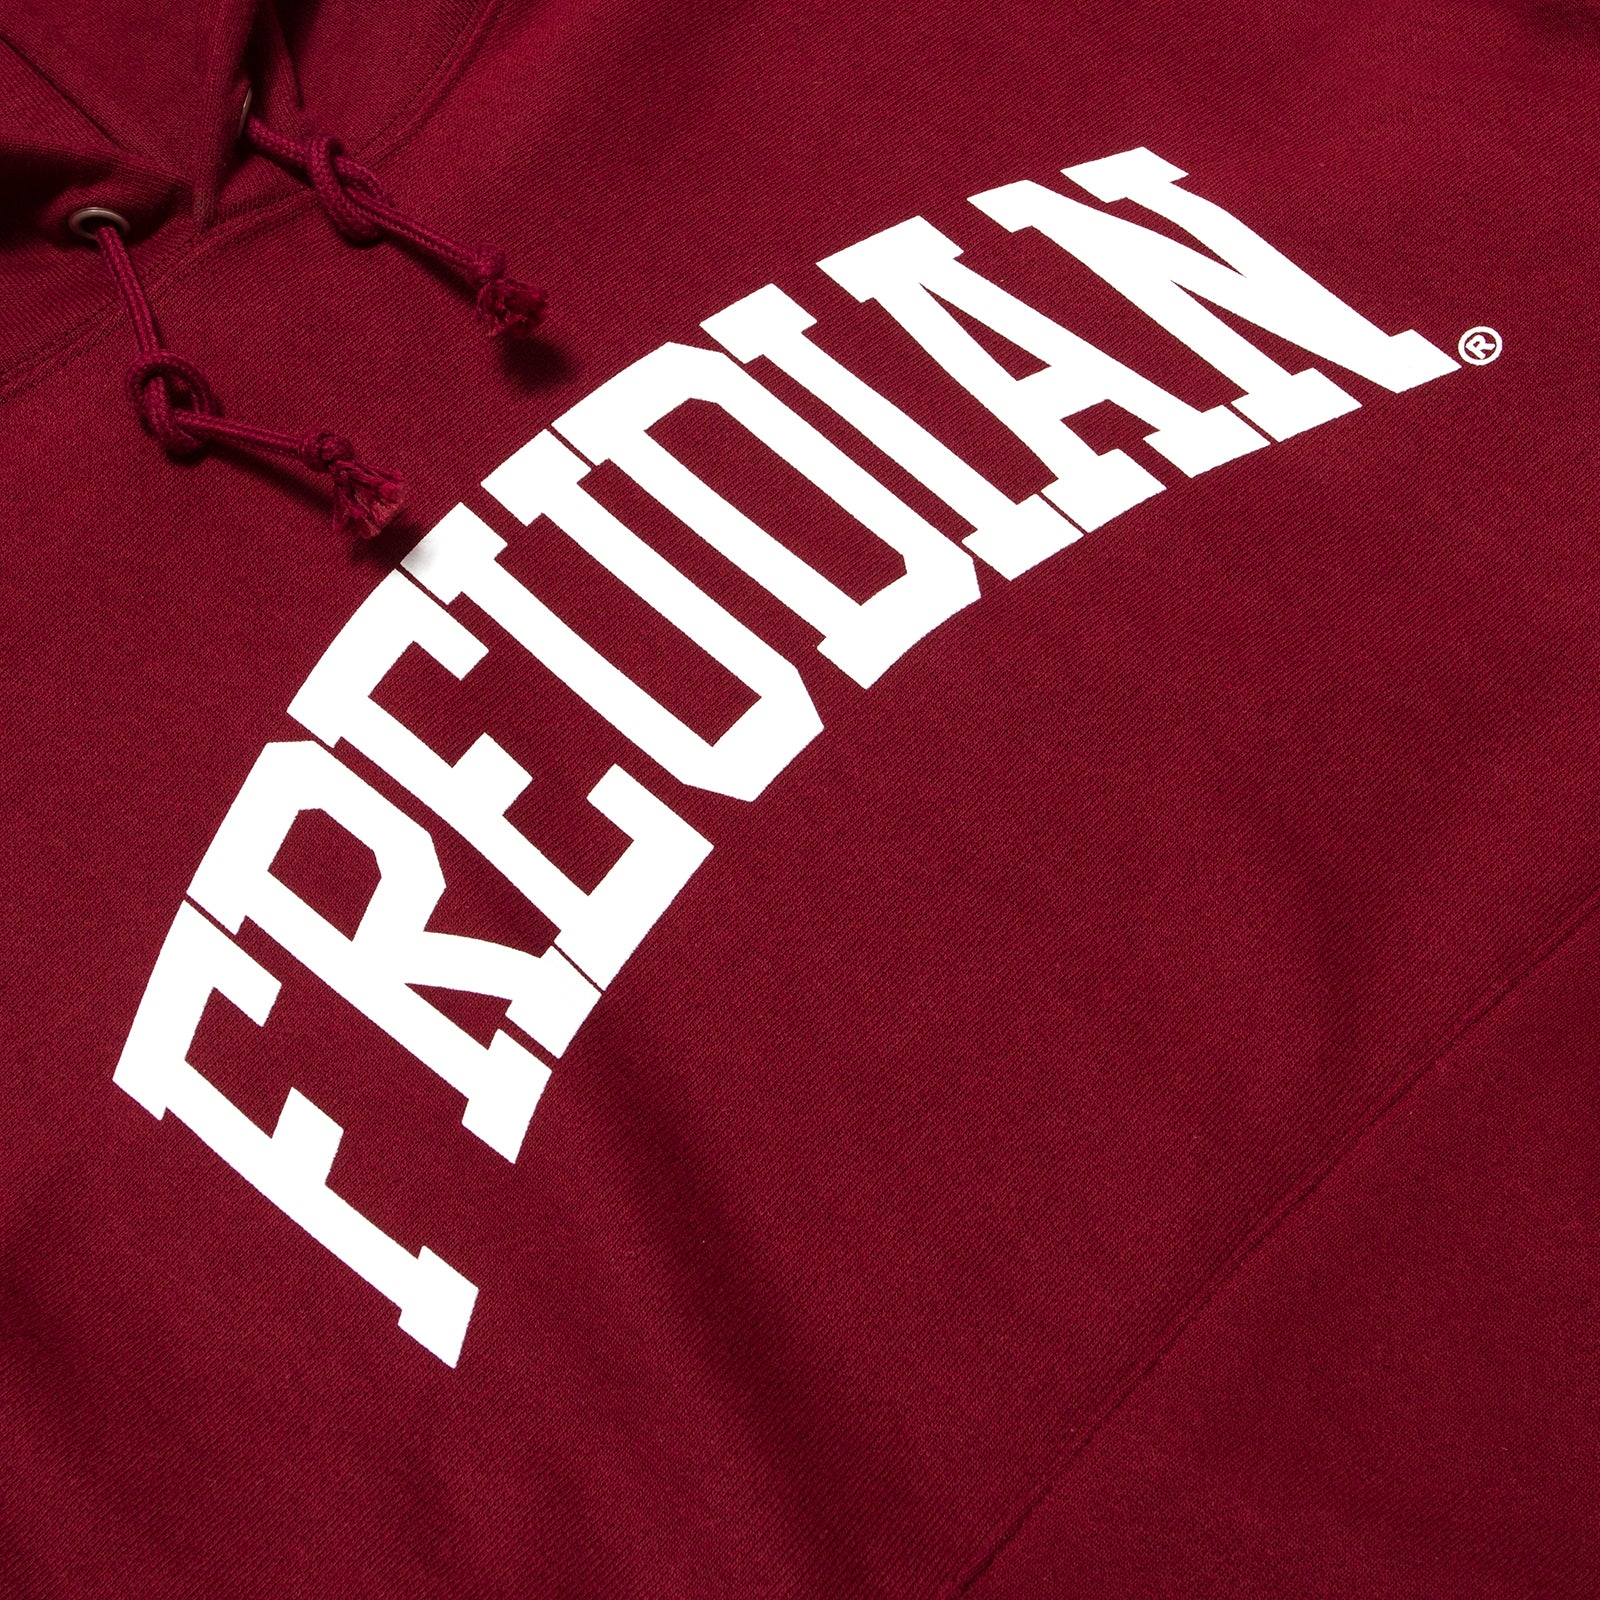 College Dropout Hoodie Burgandy Golden Child Inc